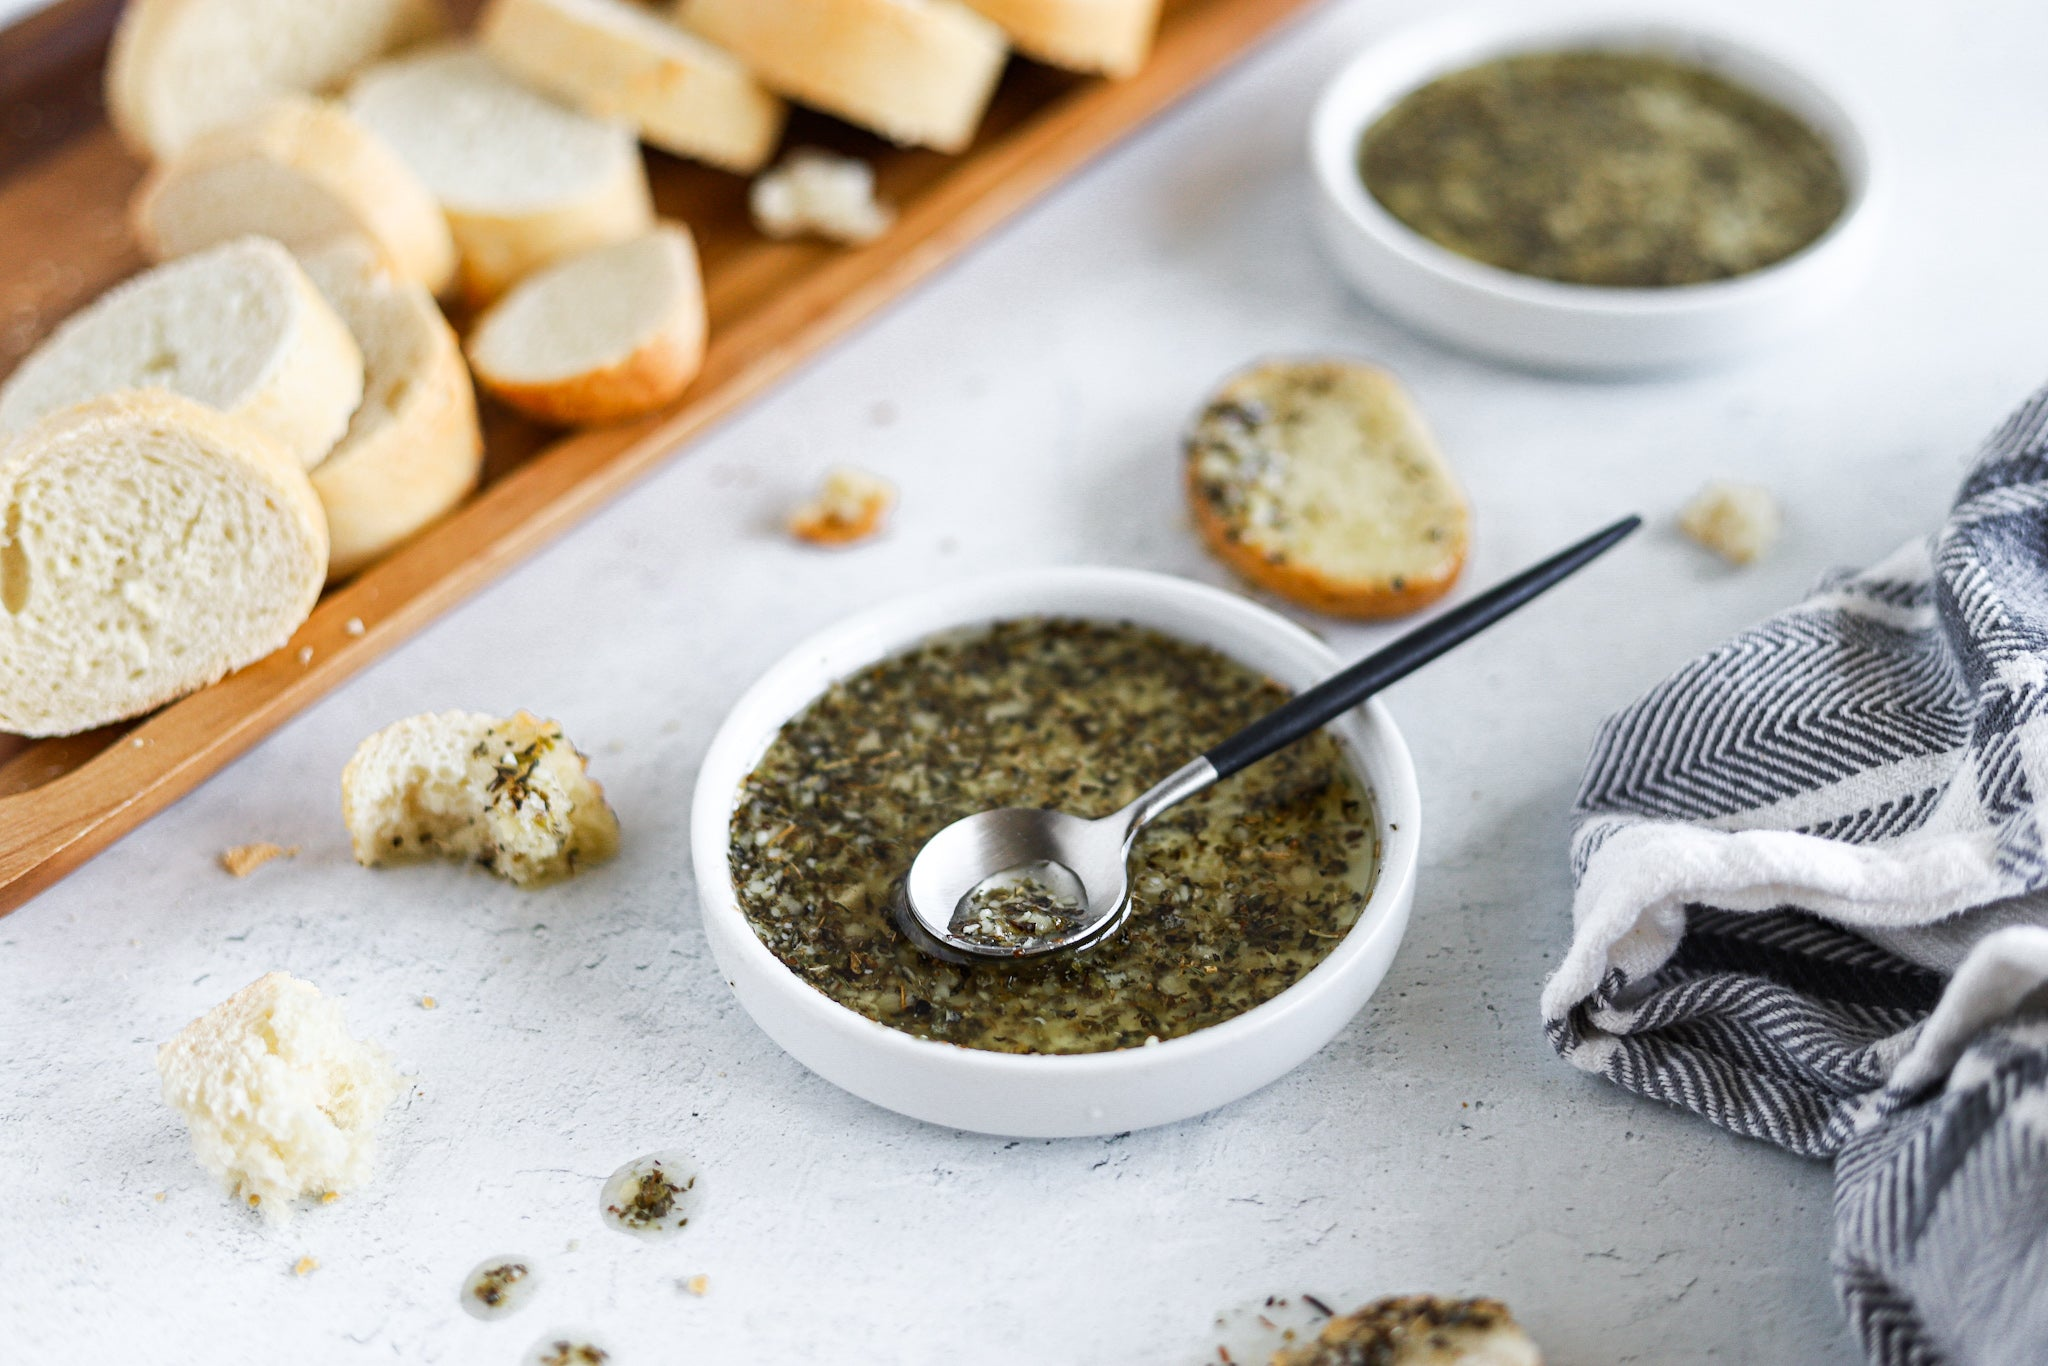 Herb Dipping Oil for Bread